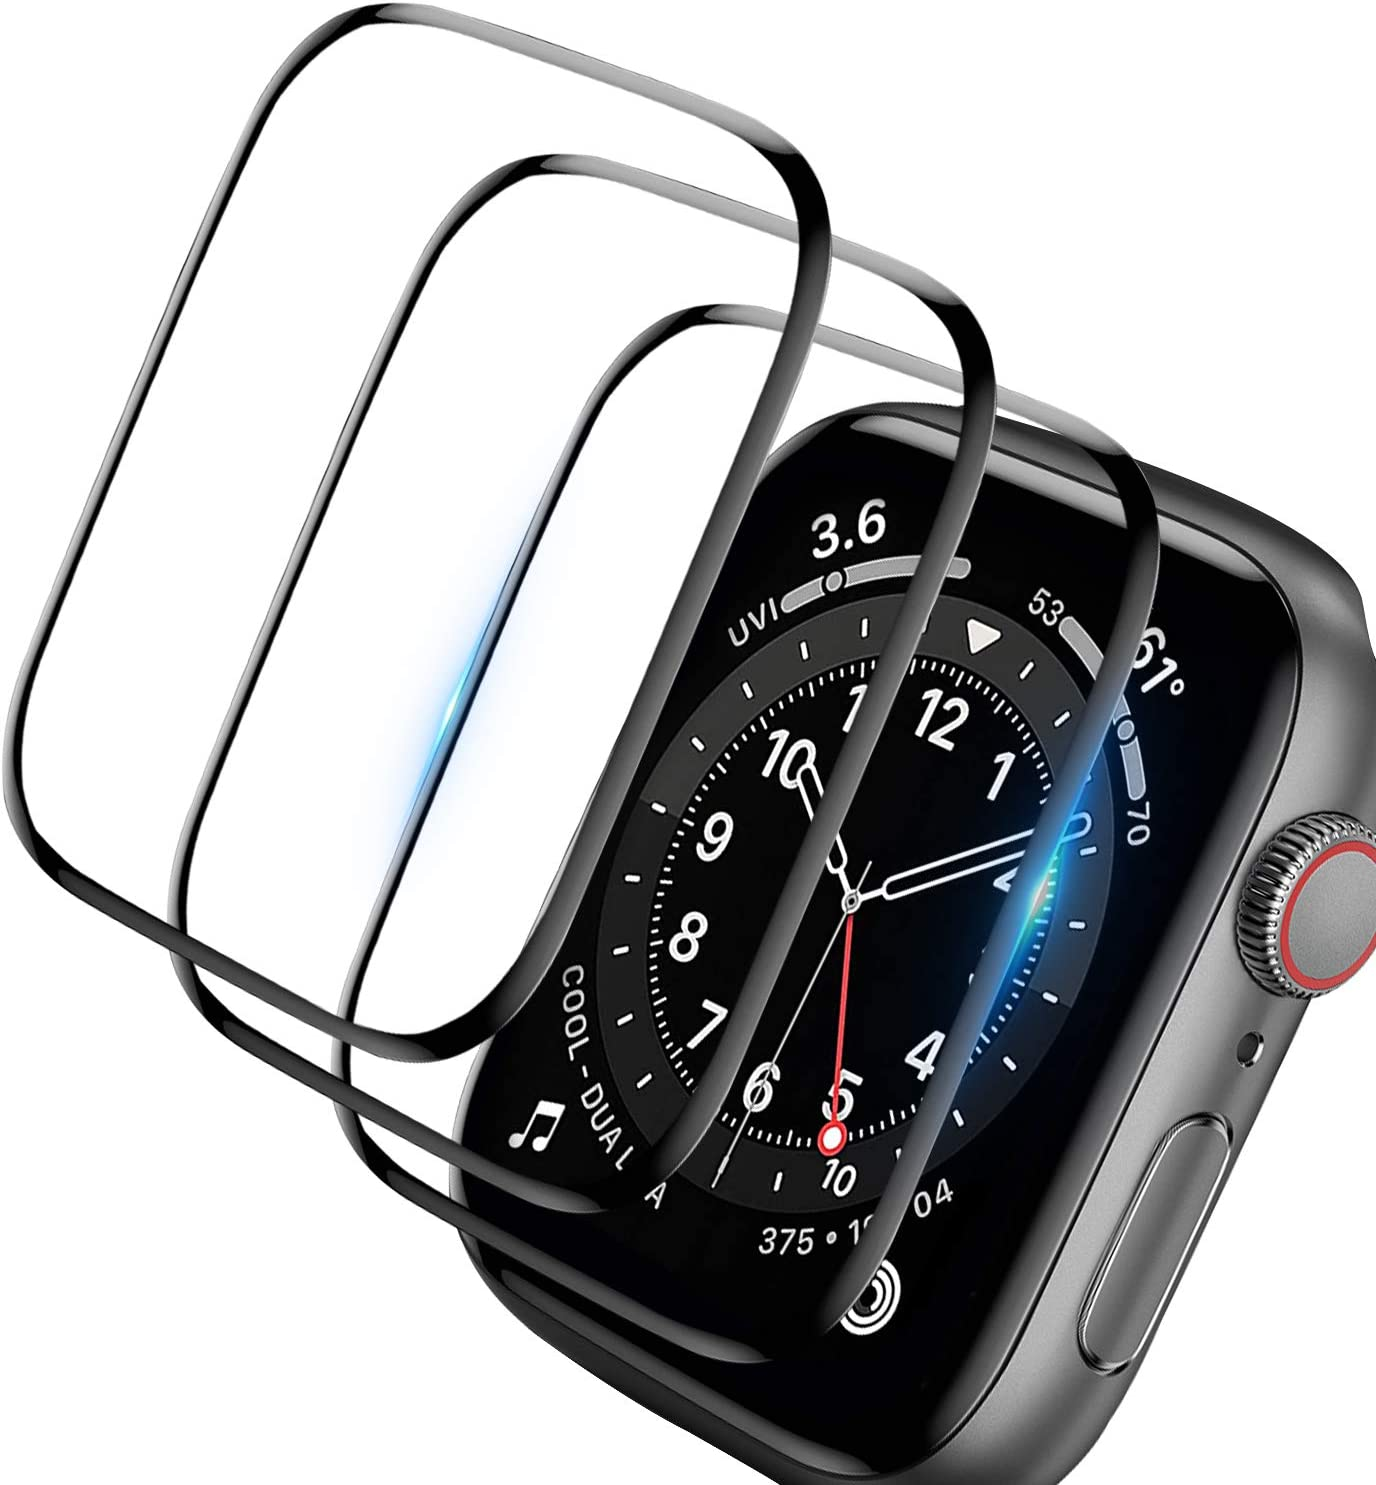 [3 Pack]Screen Protector for Apple Watch Series 3/2/1 38mm, 3D Curved Edge Anti-Scratch Bubble Free HD Ultra Shatterproof Flexible Protector Film Compatible Apple iWatch Series 3/2/1